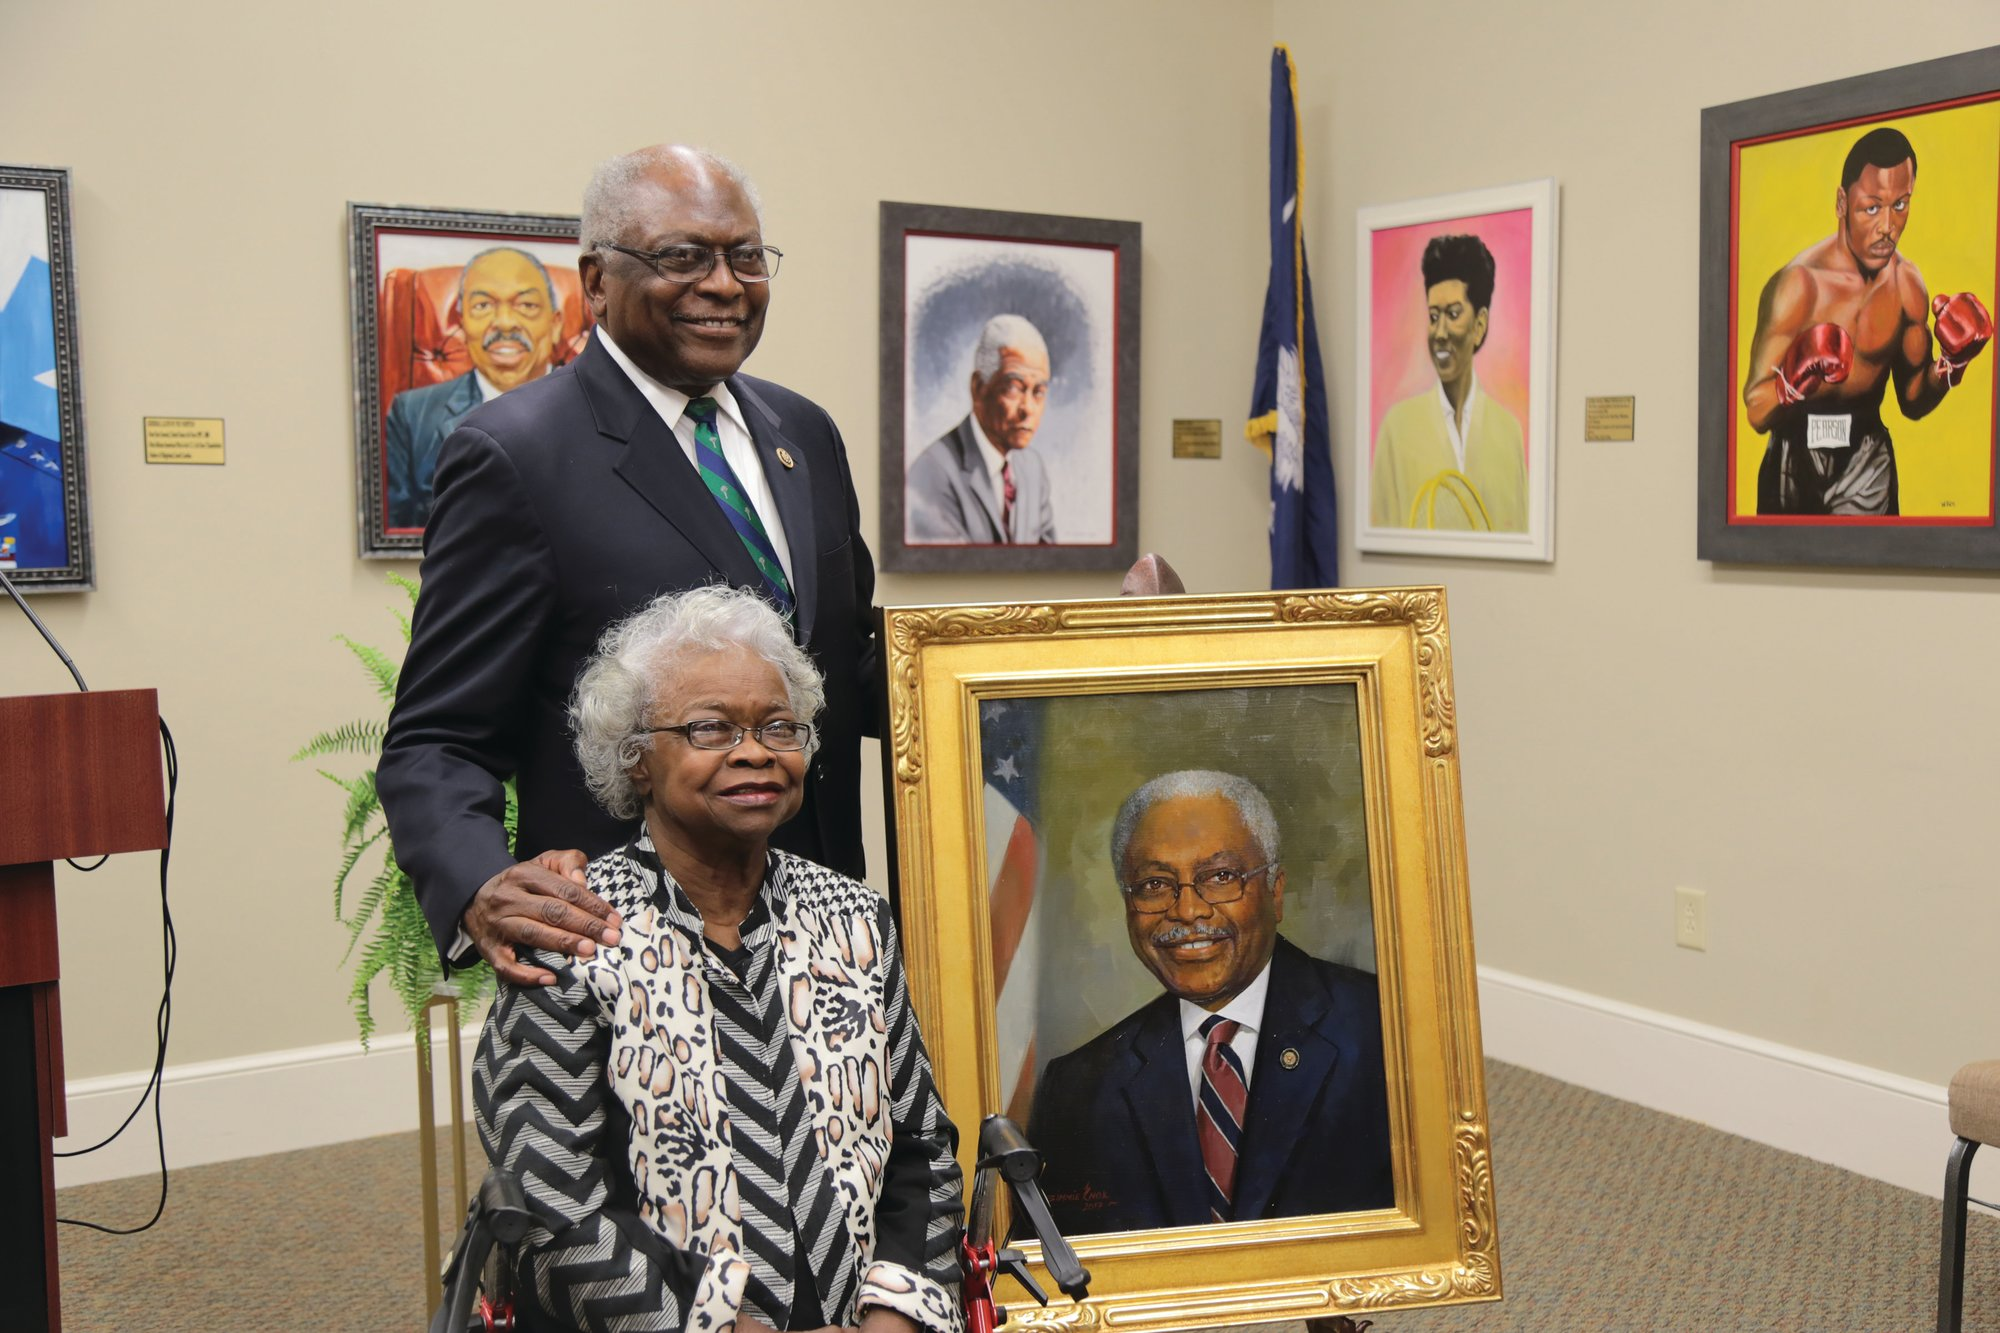 Wife of Rep. Clyburn dies, remembered fondly | The Sumter Item